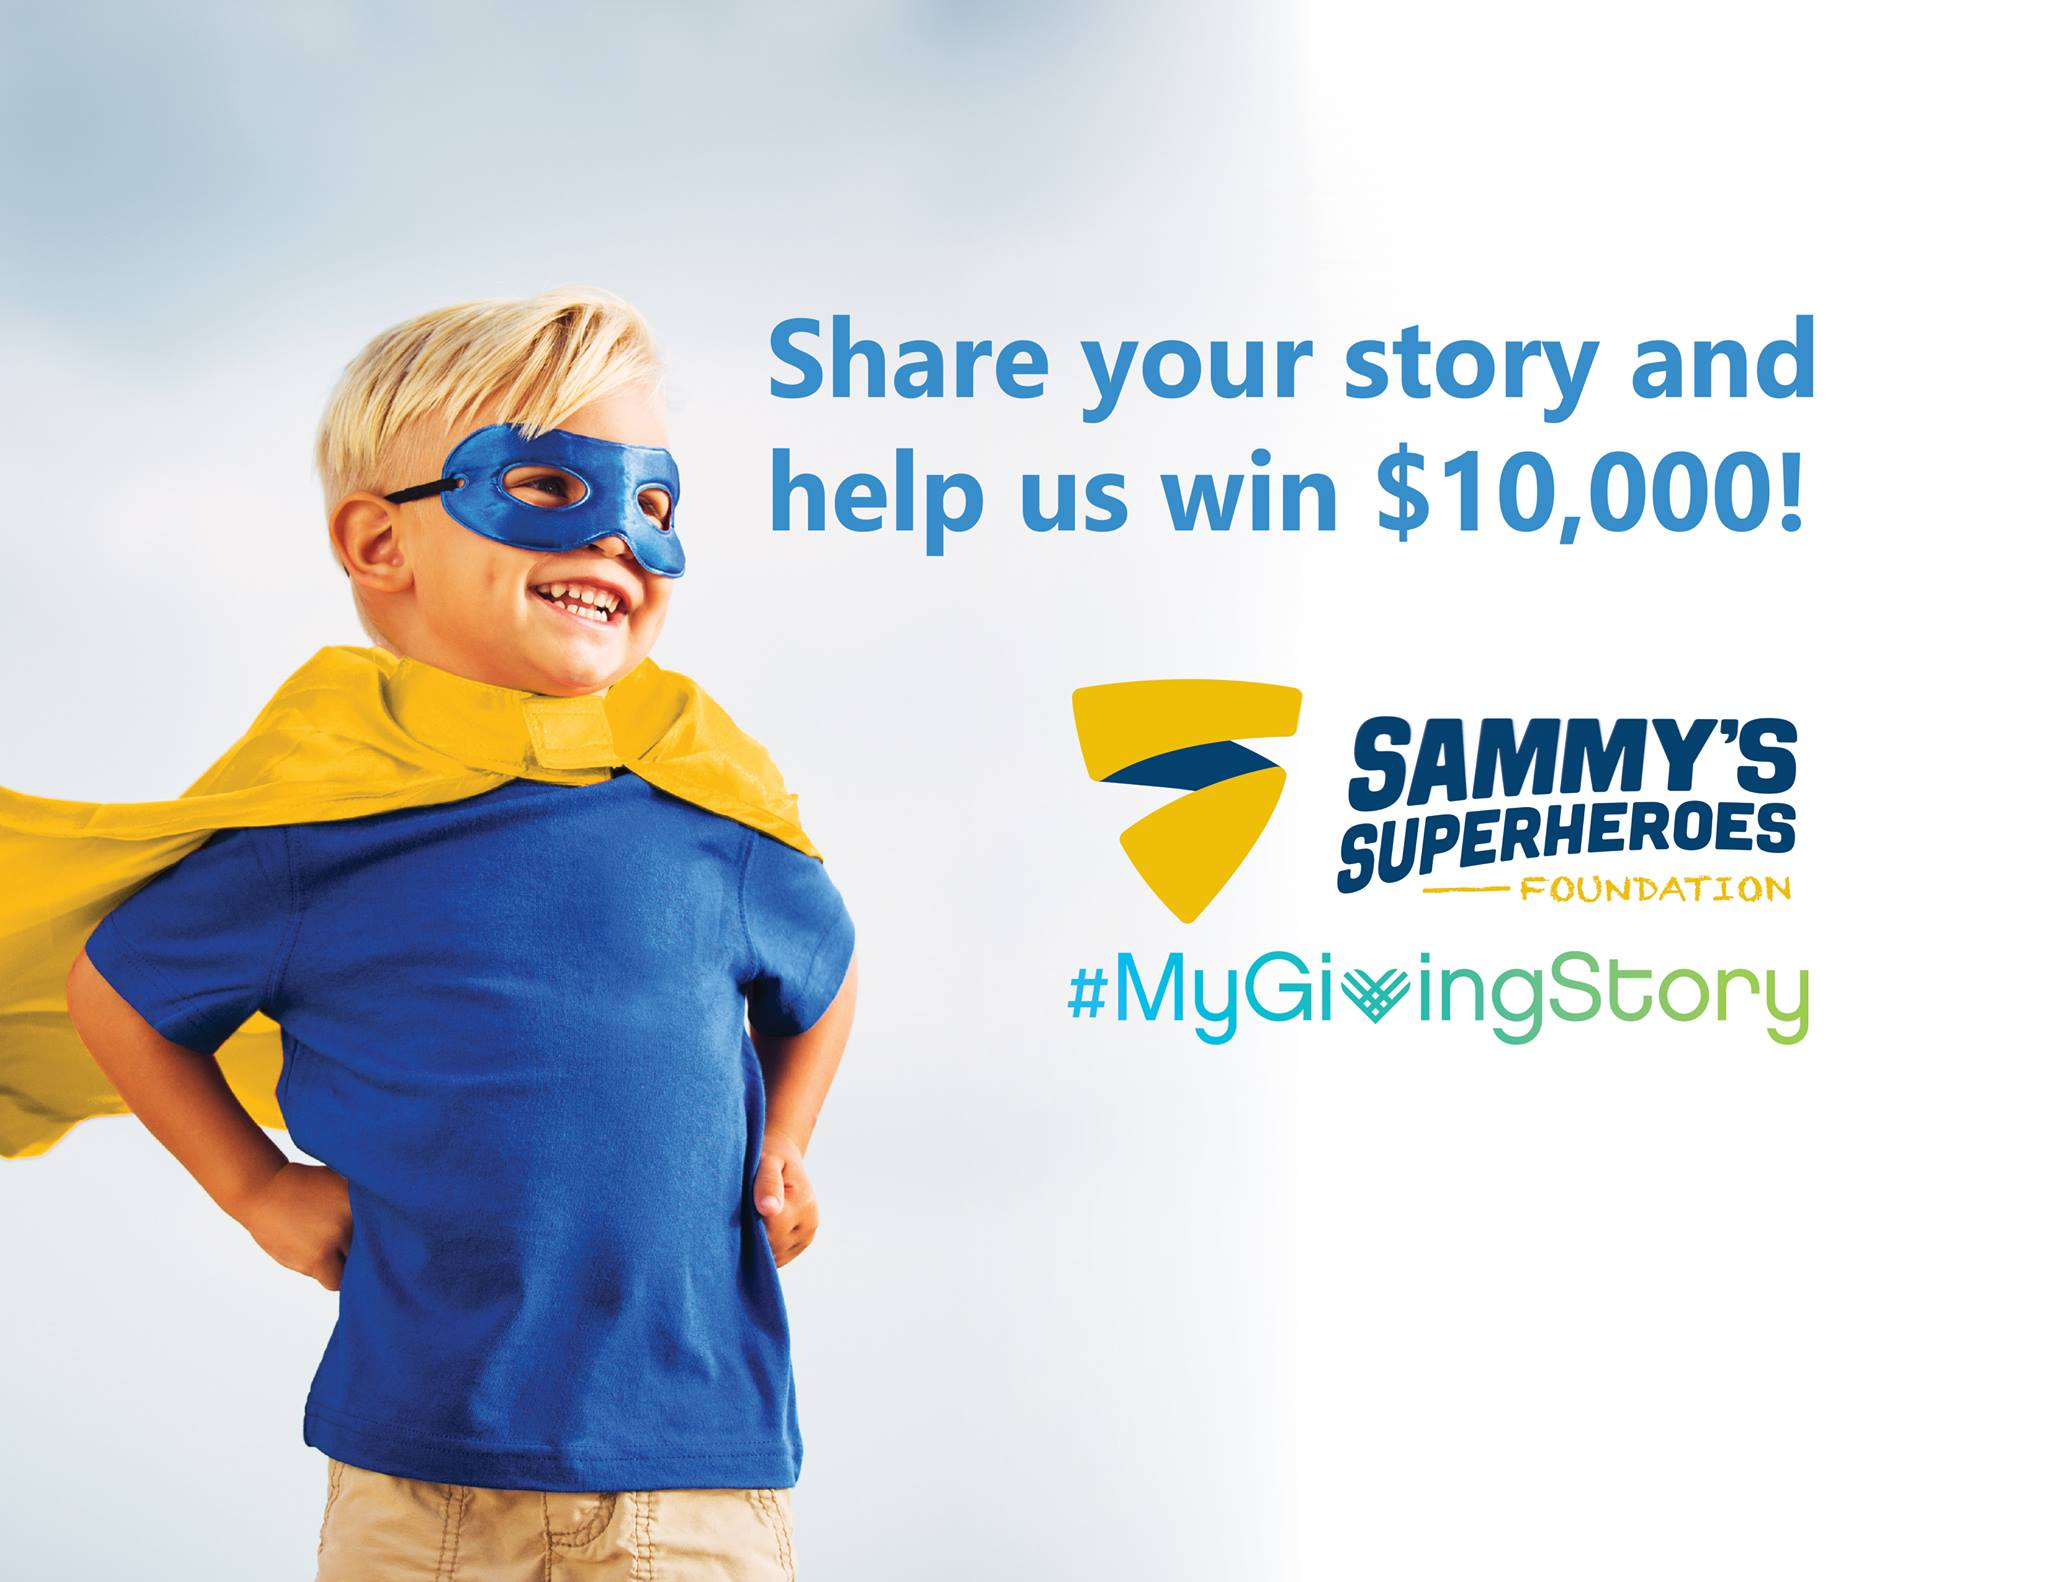 Share Your Story - Help us win $10,000 in Grants